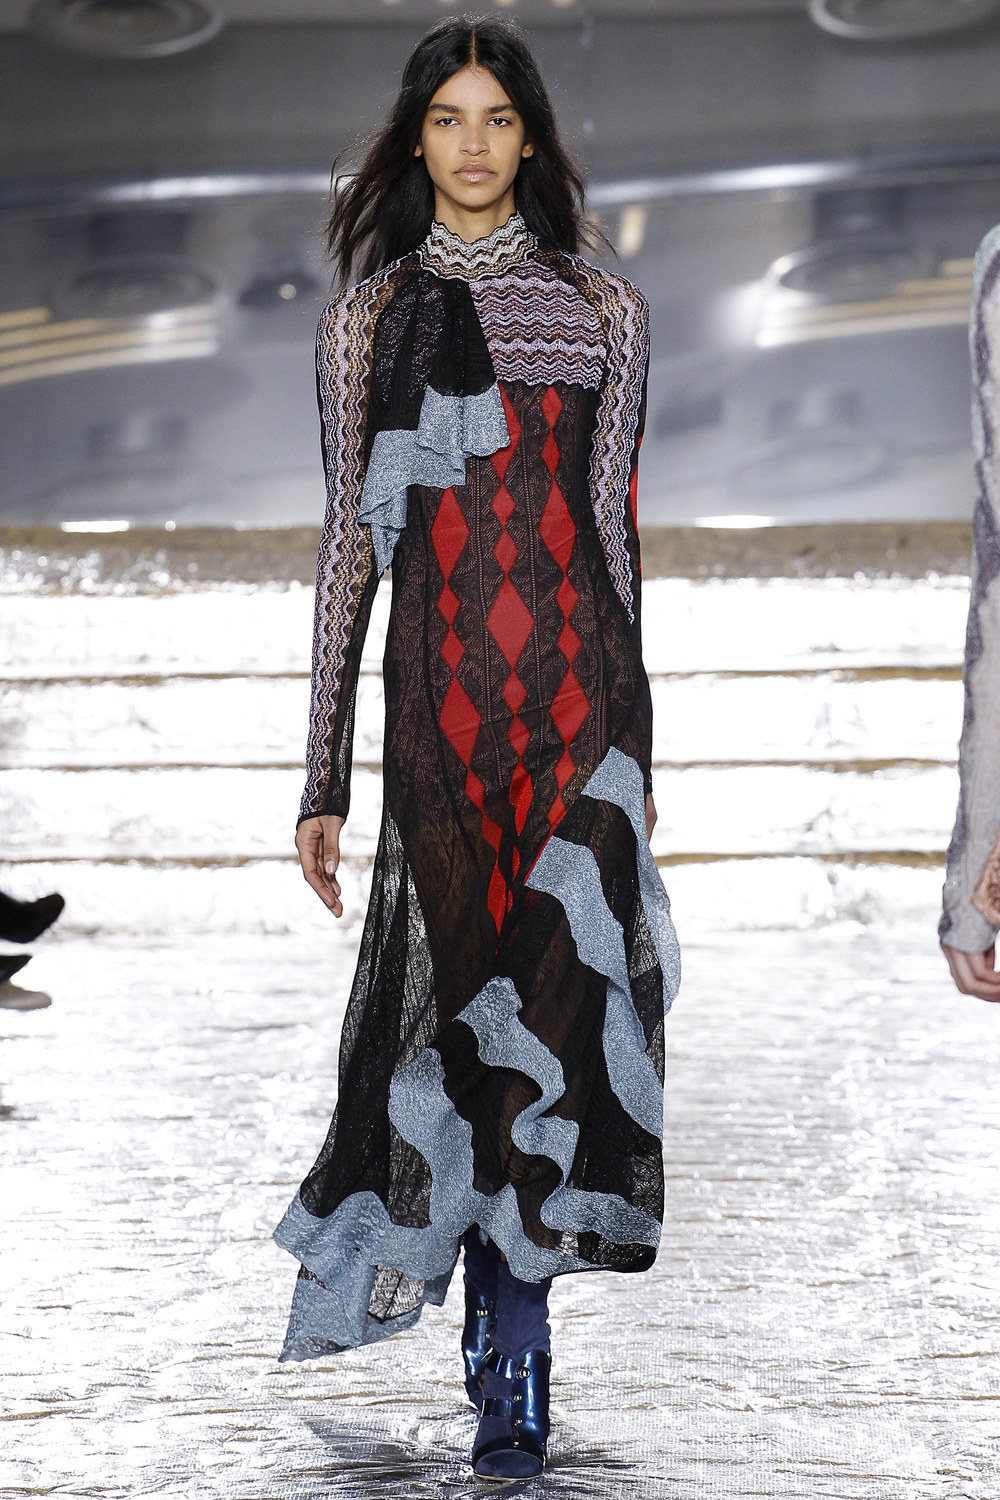 Peter-Pilotto-Autumn-Winter-Fall-2016-London-Fashion-Week-21.jpg